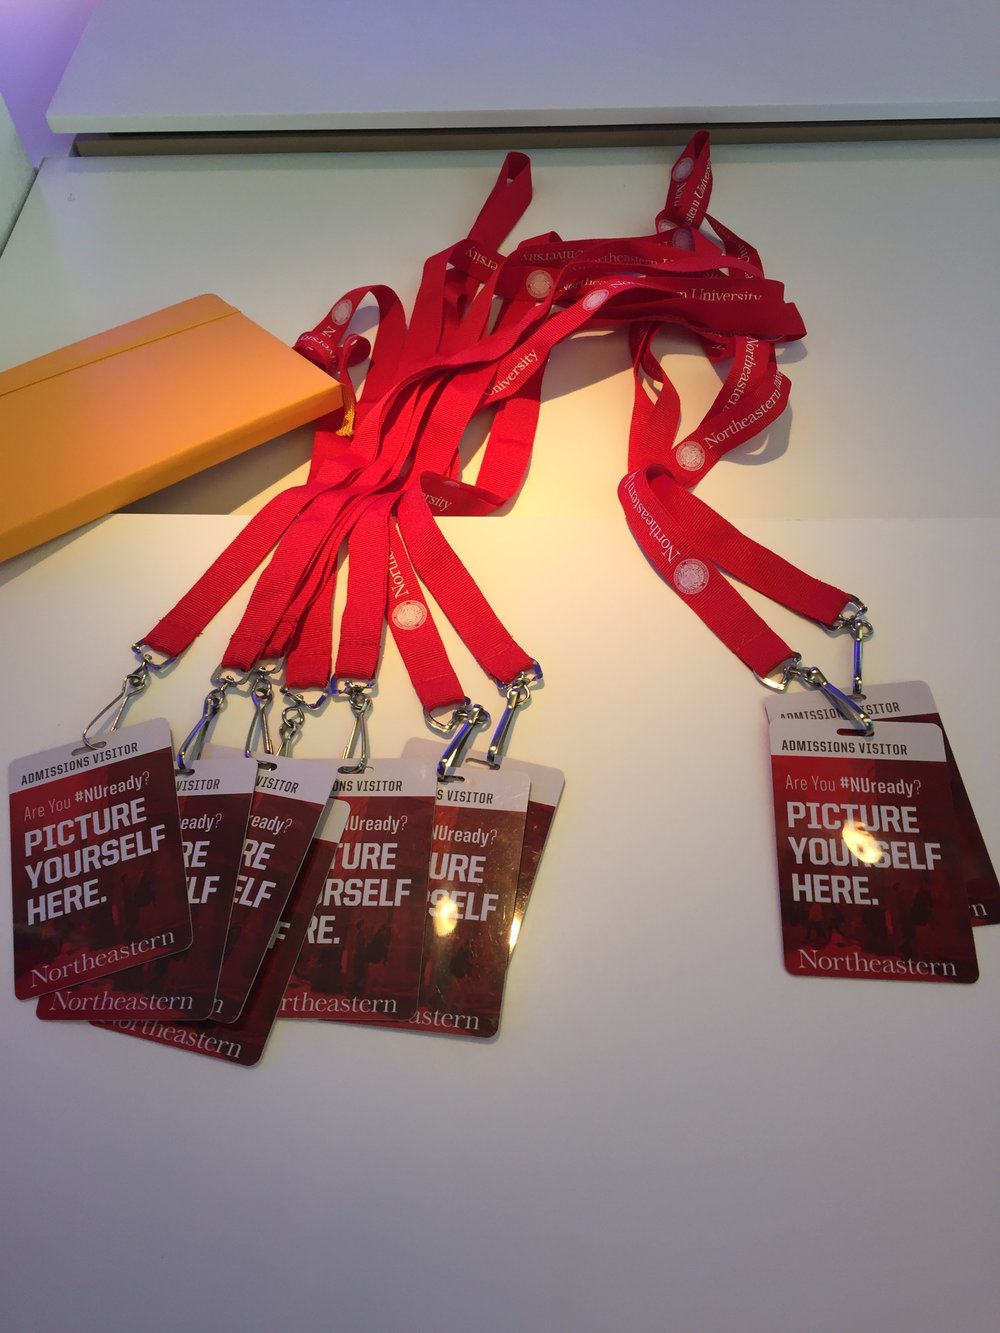 "Northeastern University offers a swanky ID badge and lanyard which reads ""Admissions Visitor."""